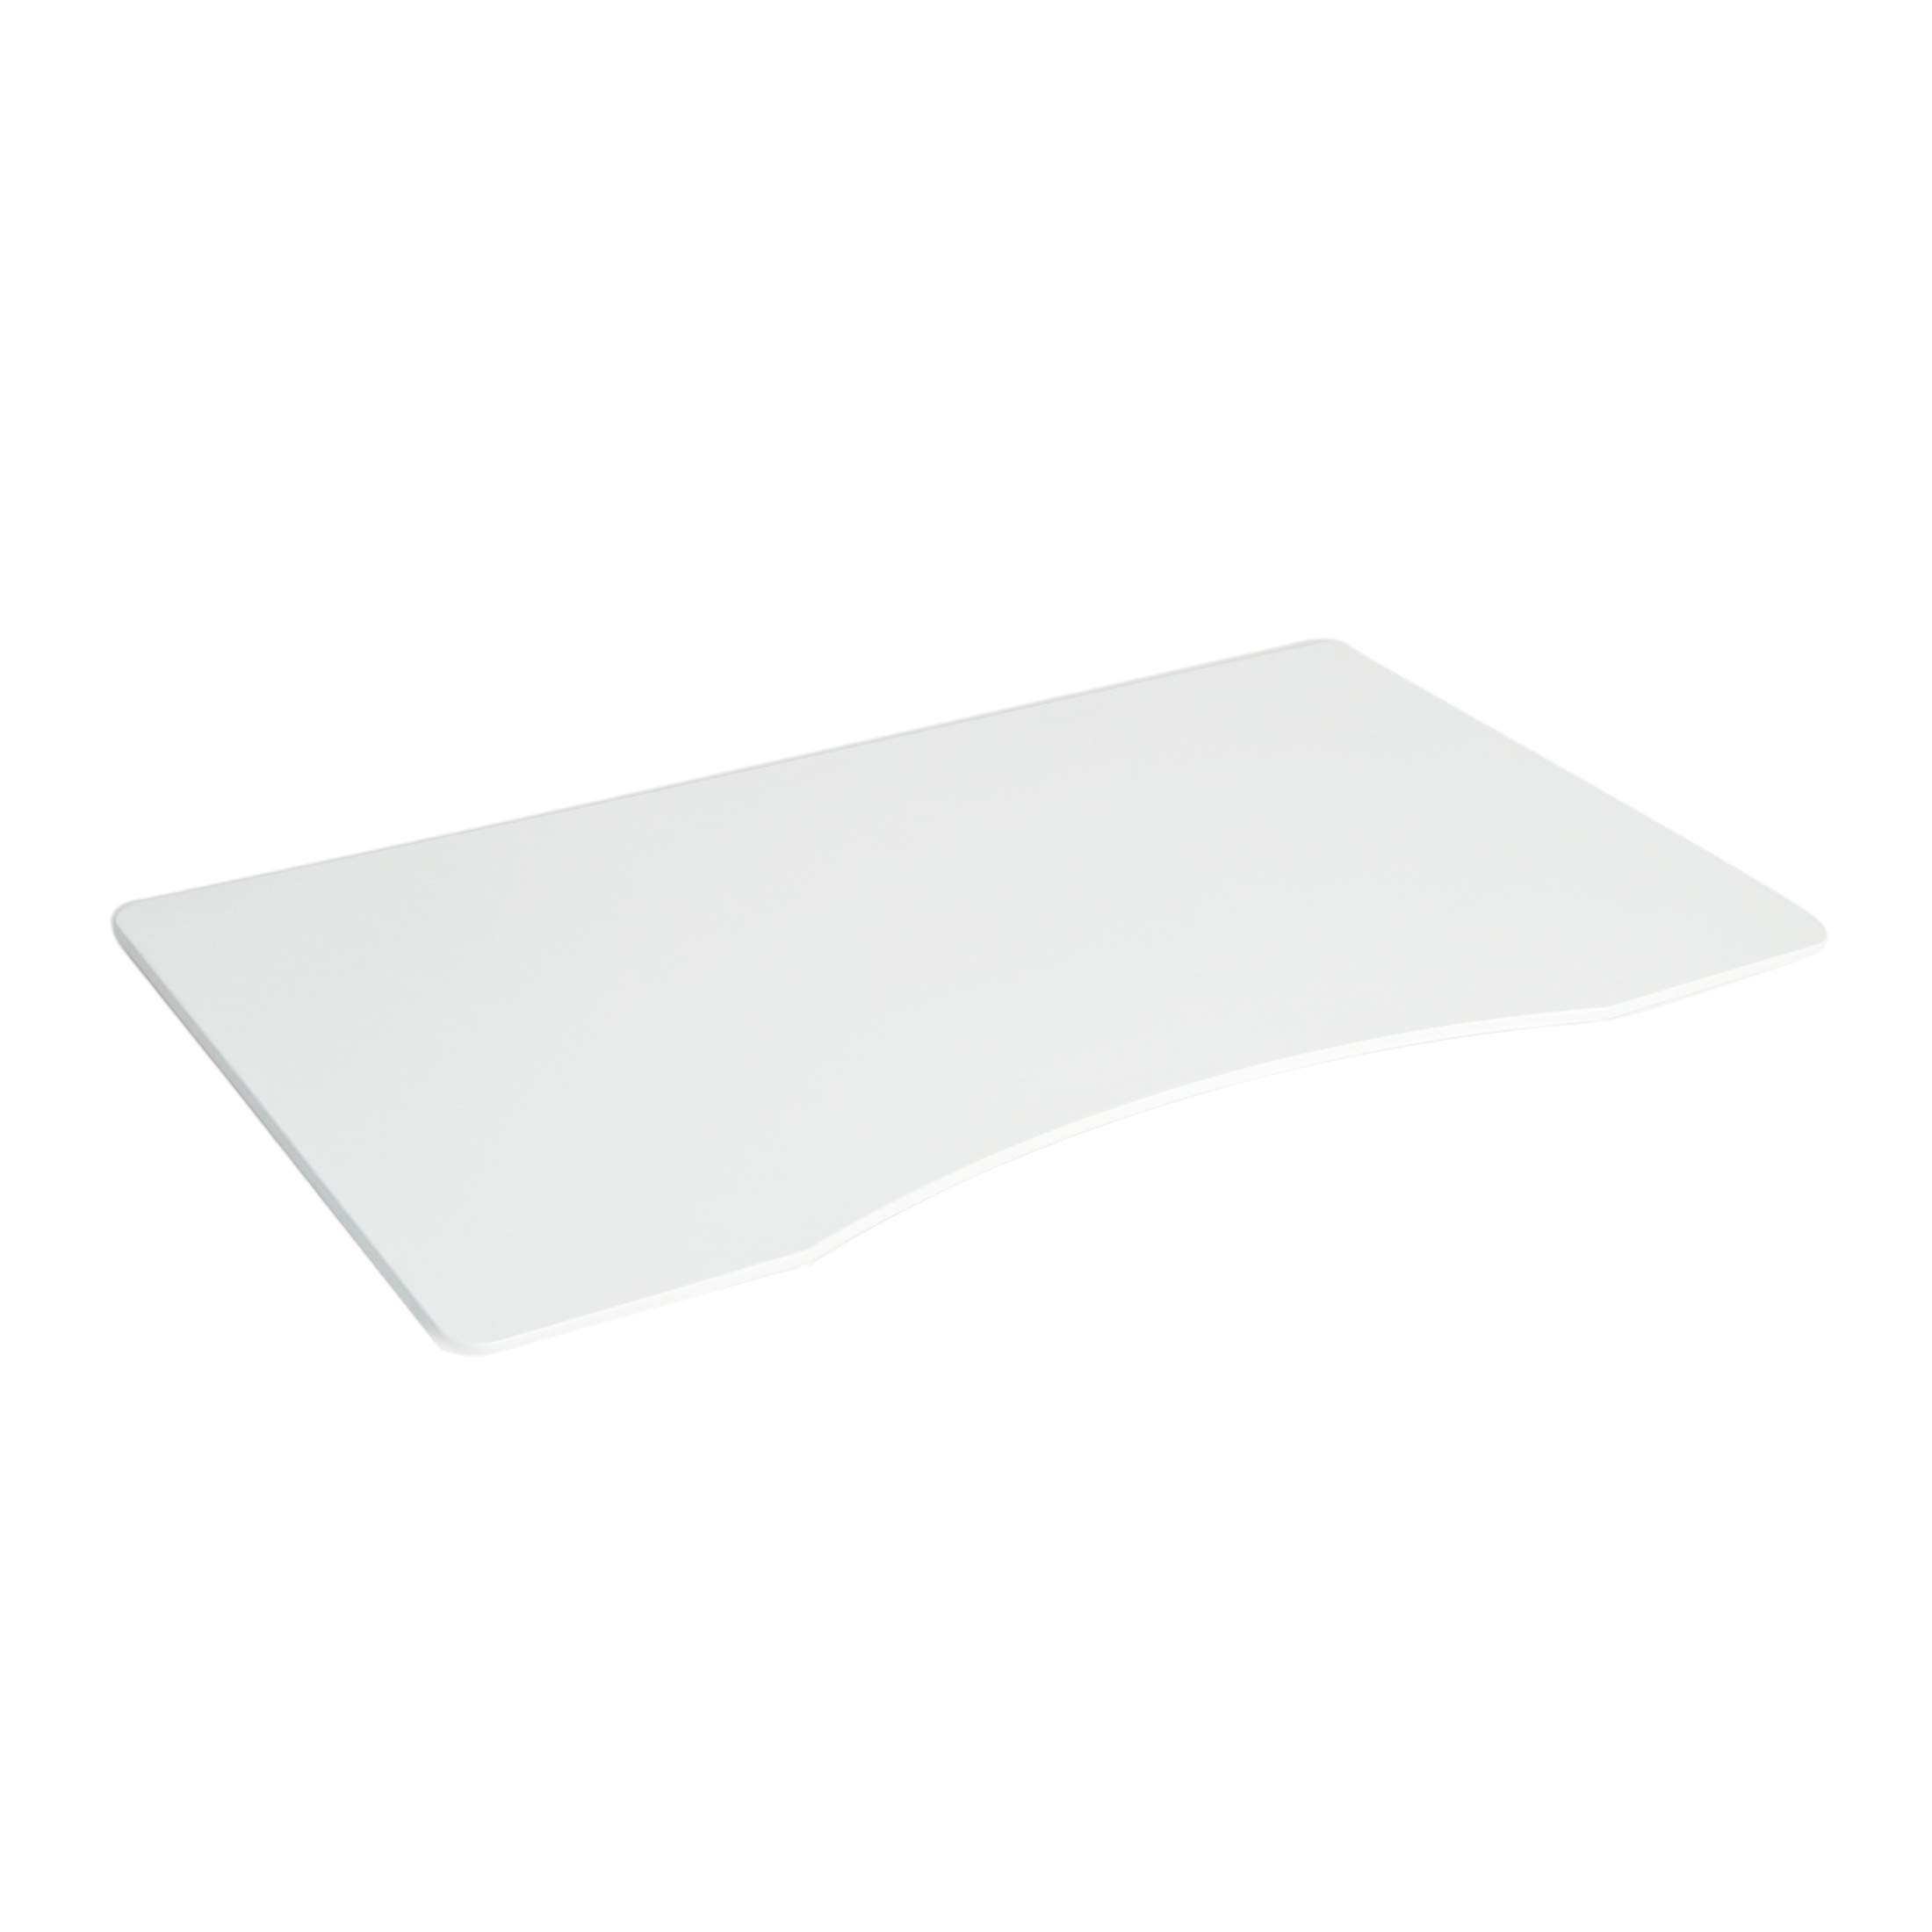 Seville Classics Ergo Desk Table Top with Beveled Bottom Edges, 54'' x 30'', White